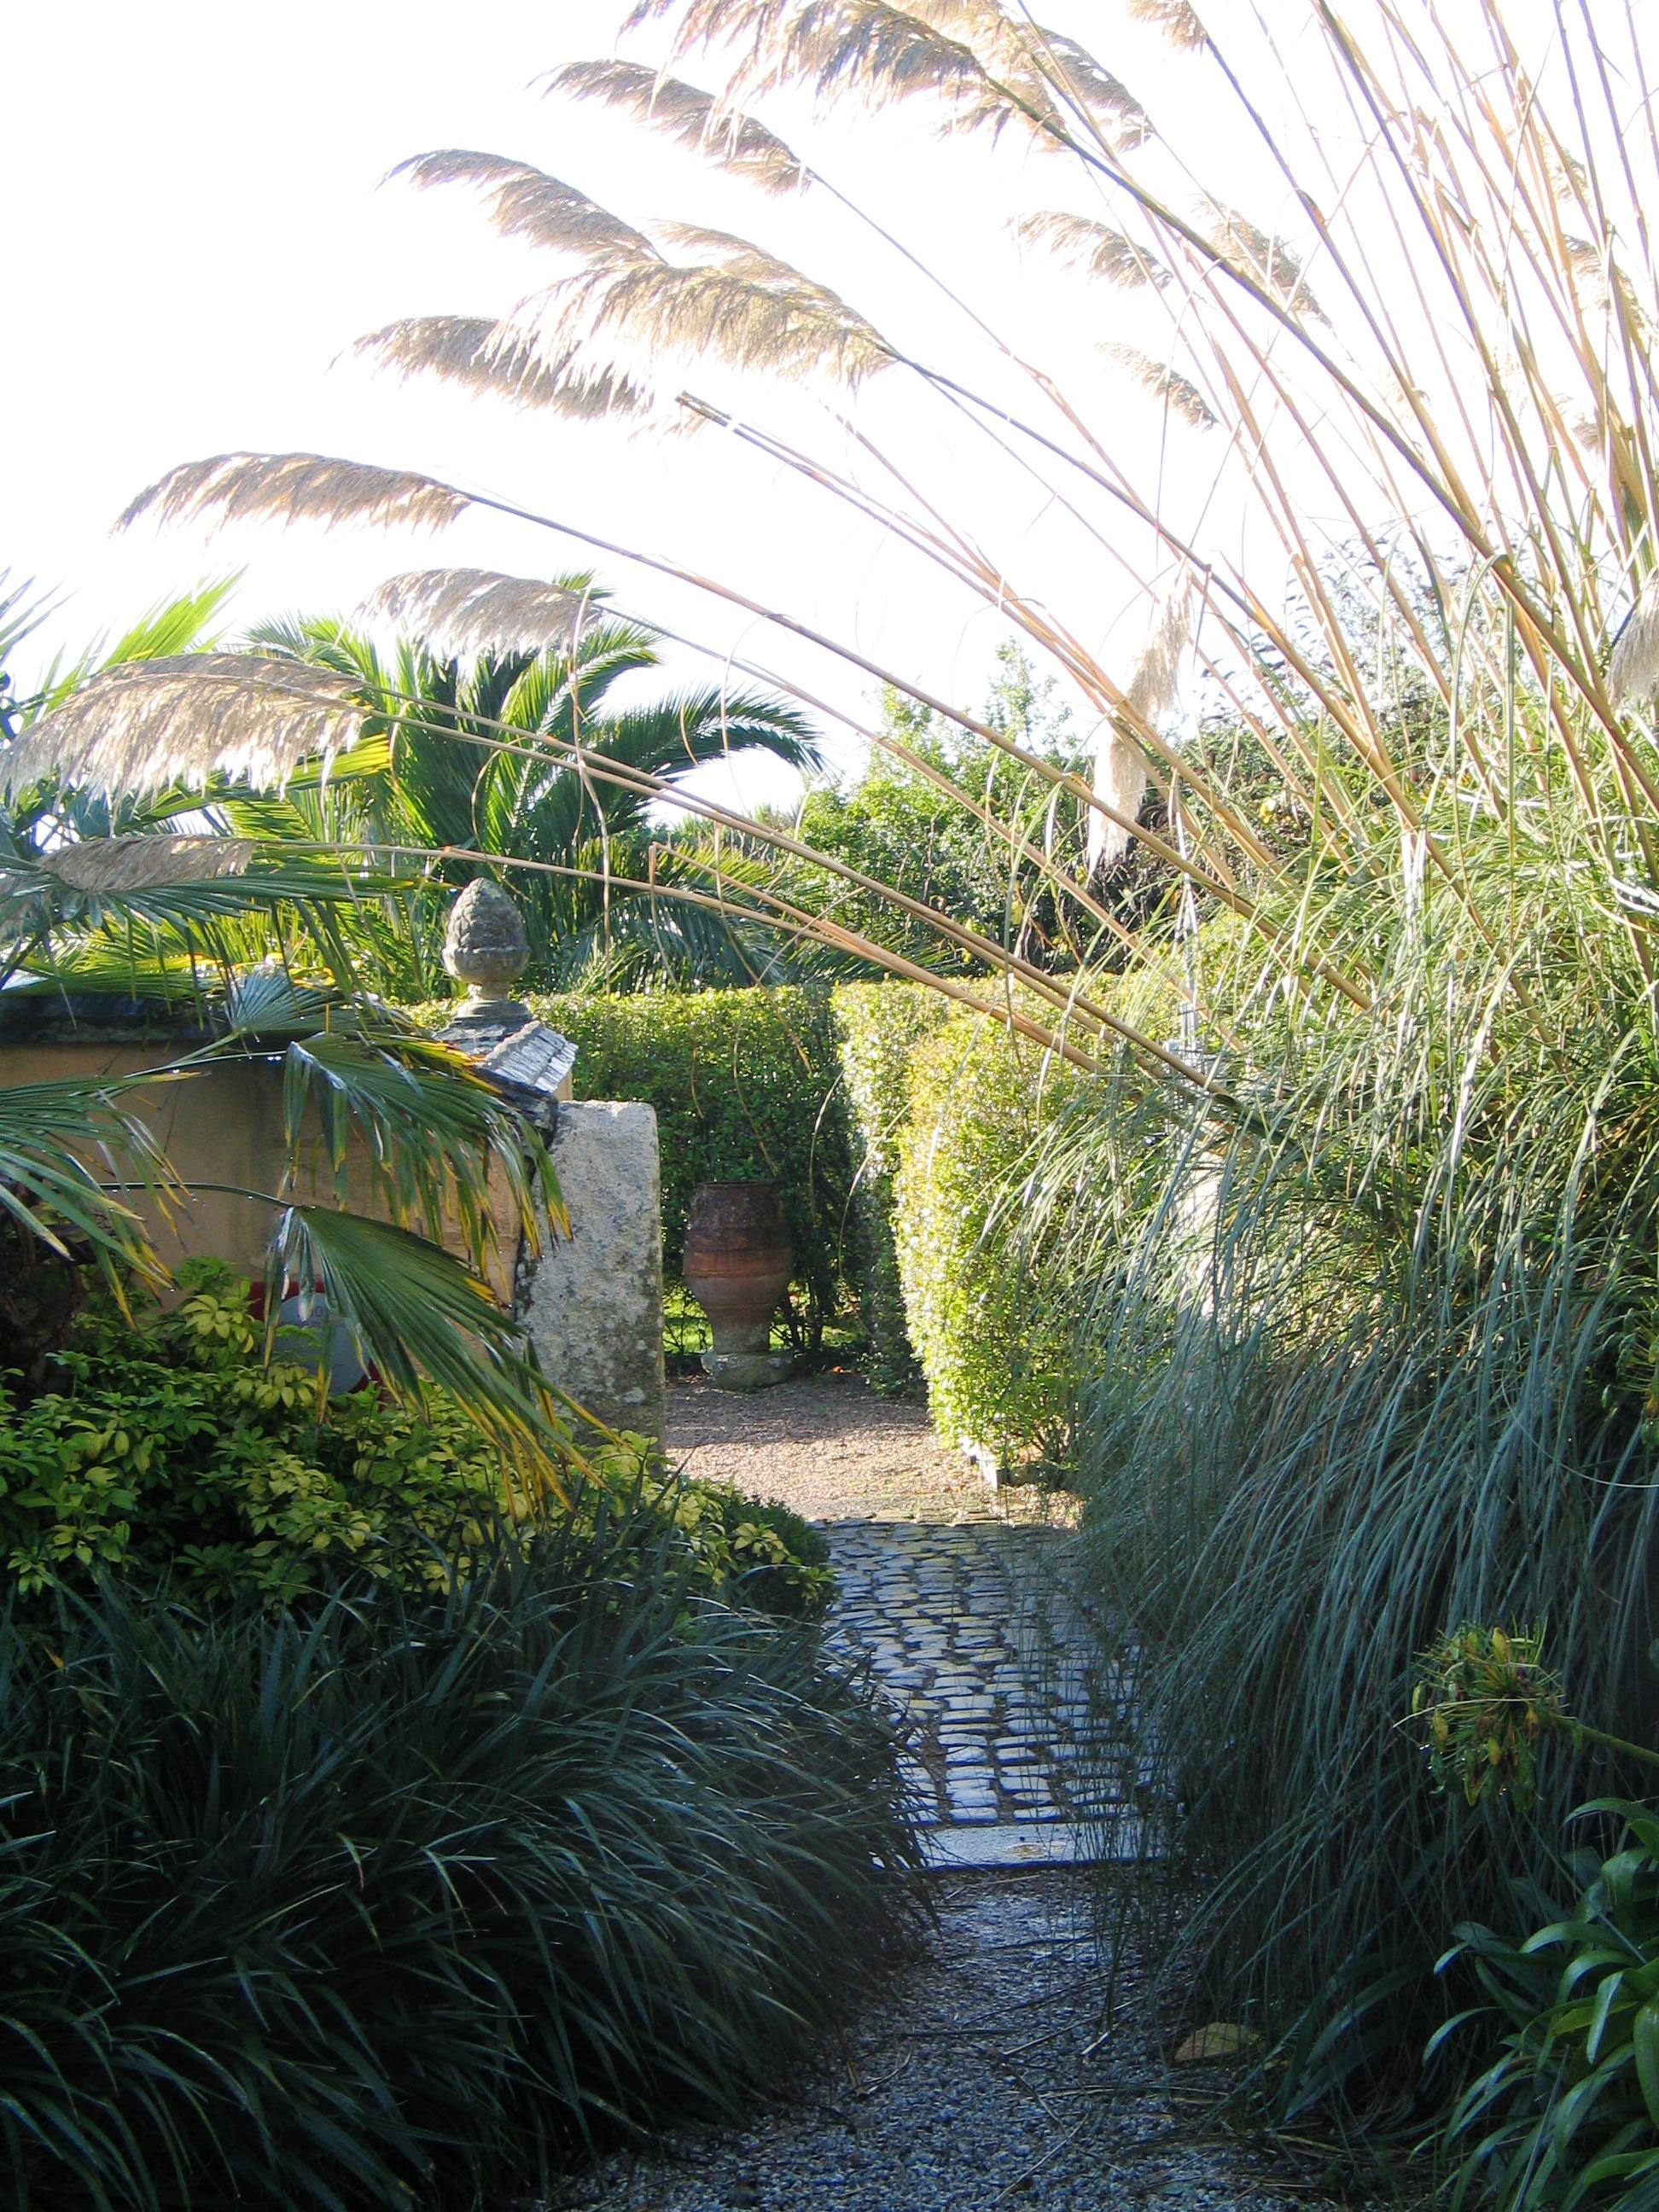 Pahway to an italianate garden in cornwall